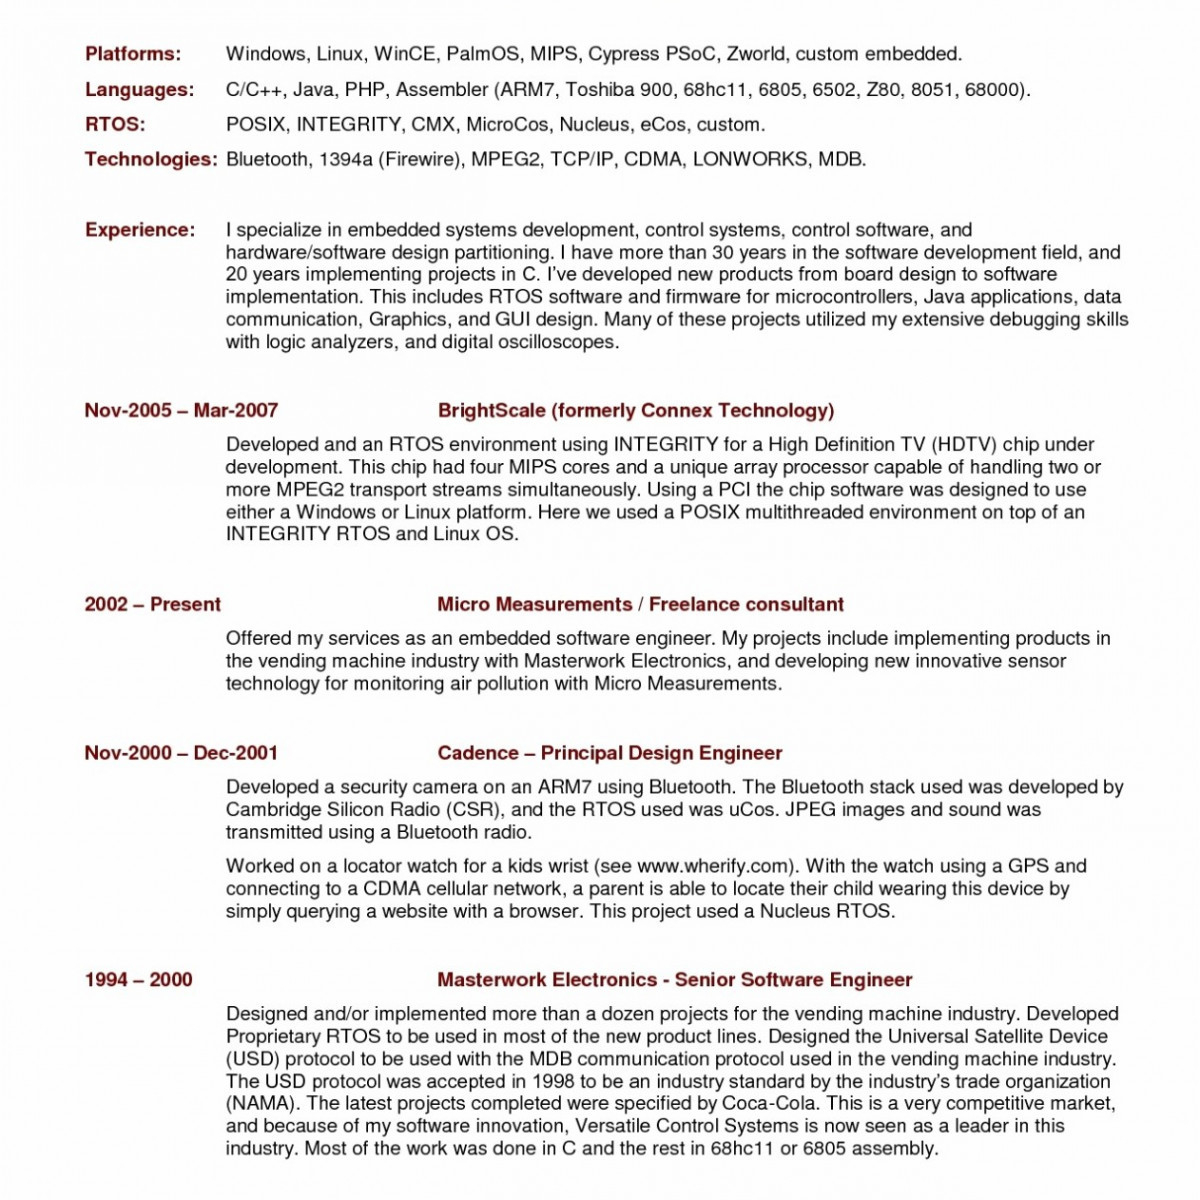 Controller Resume Template - Resume It Dazzling It Resume Sample Pr Resume Template Elegant